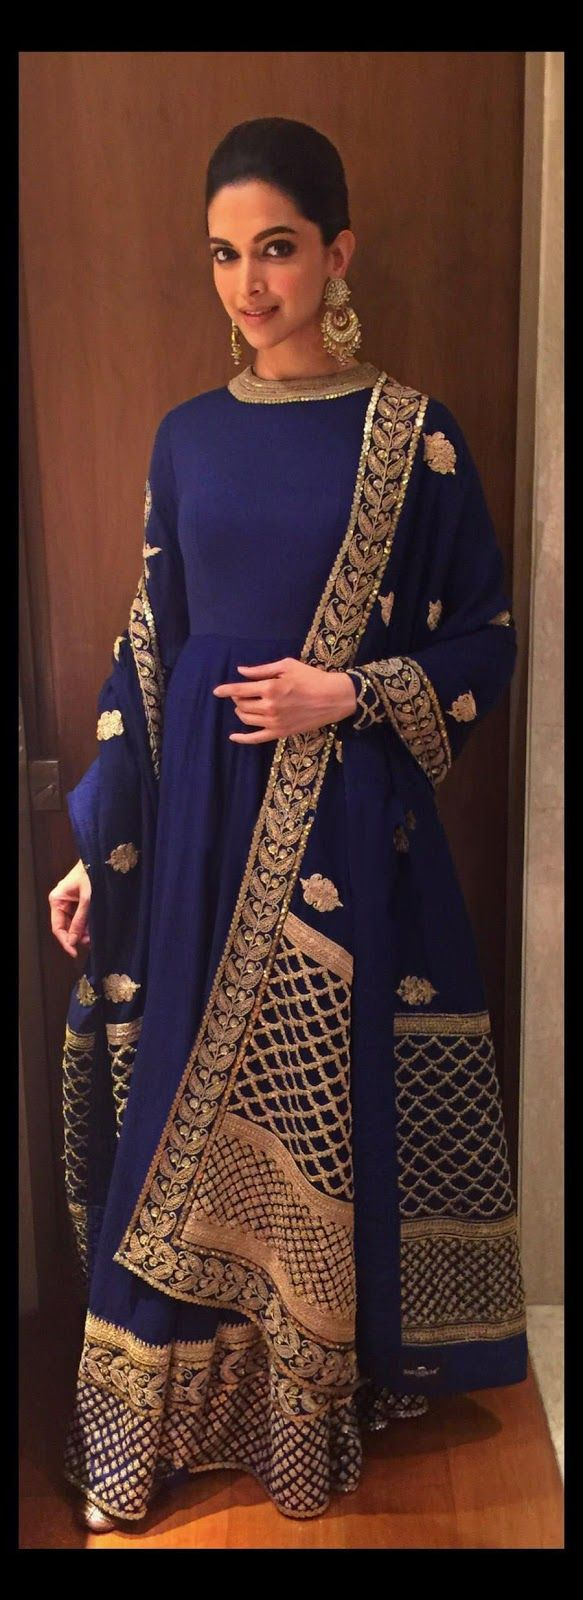 Deepika Padukone wore a Blue High Neck Anarkali Dress by Sabyasachi for the Telegraph Dinner in Kolkata